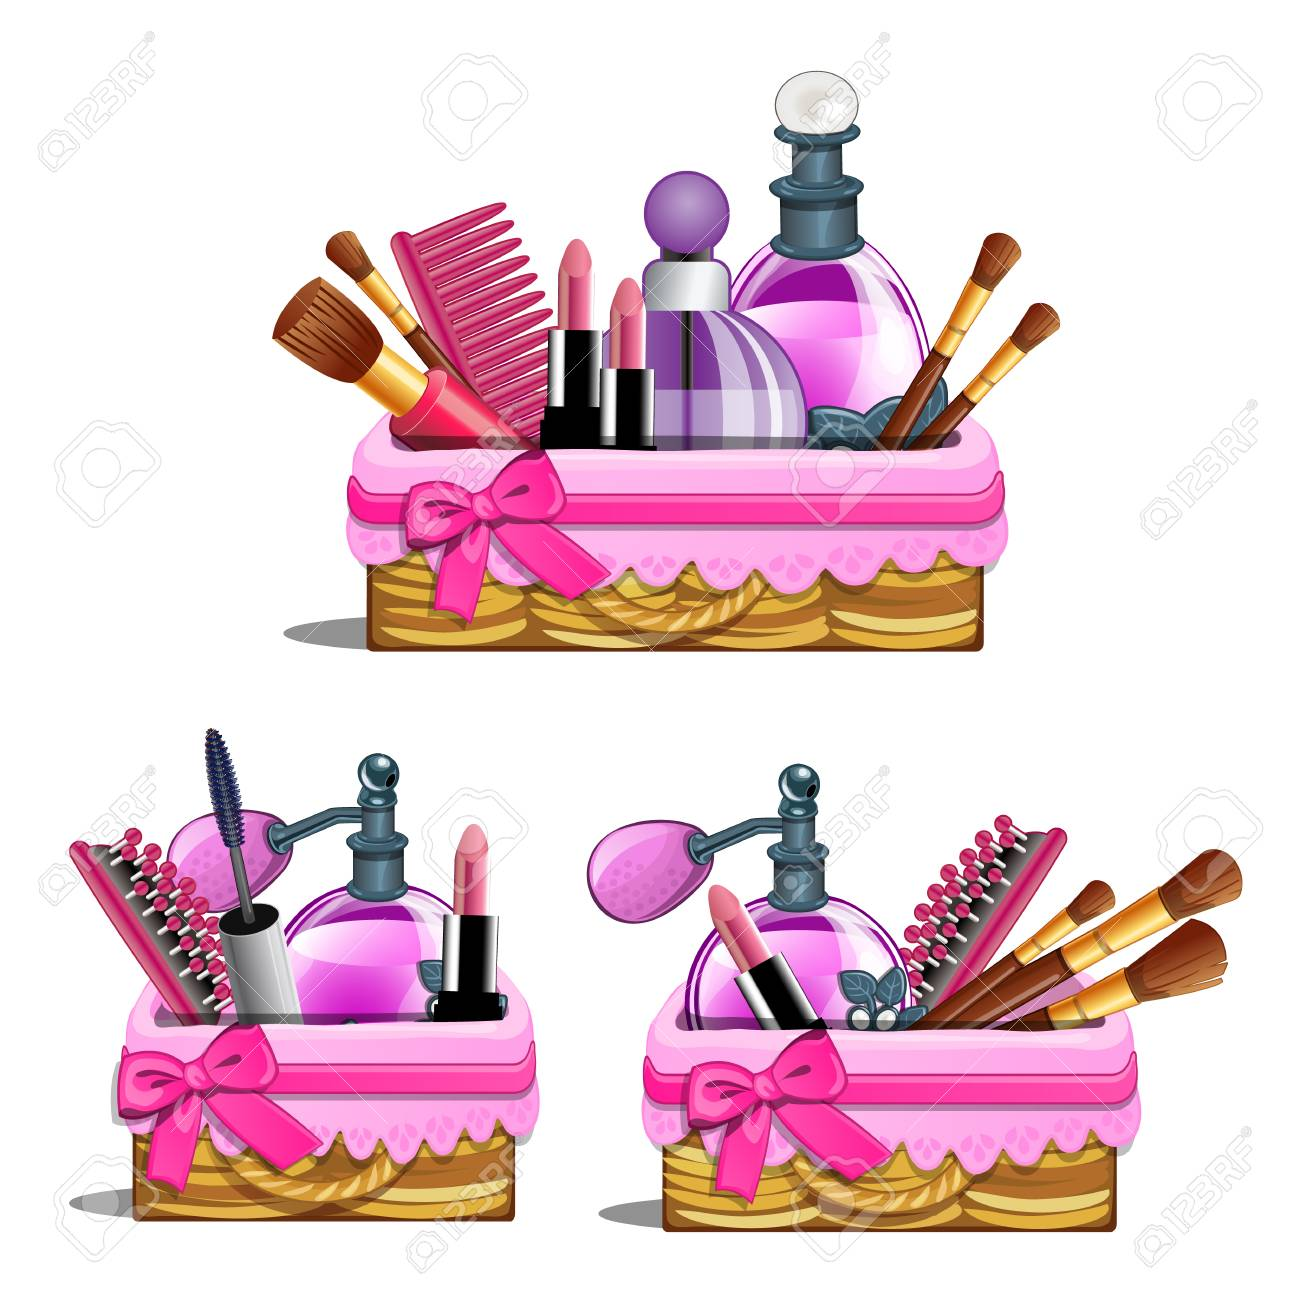 Womens Pink Basket With Cosmetic Brushes Lipstick Perfume Royalty Free Cliparts Vectors And Stock Illustration Image 86084034